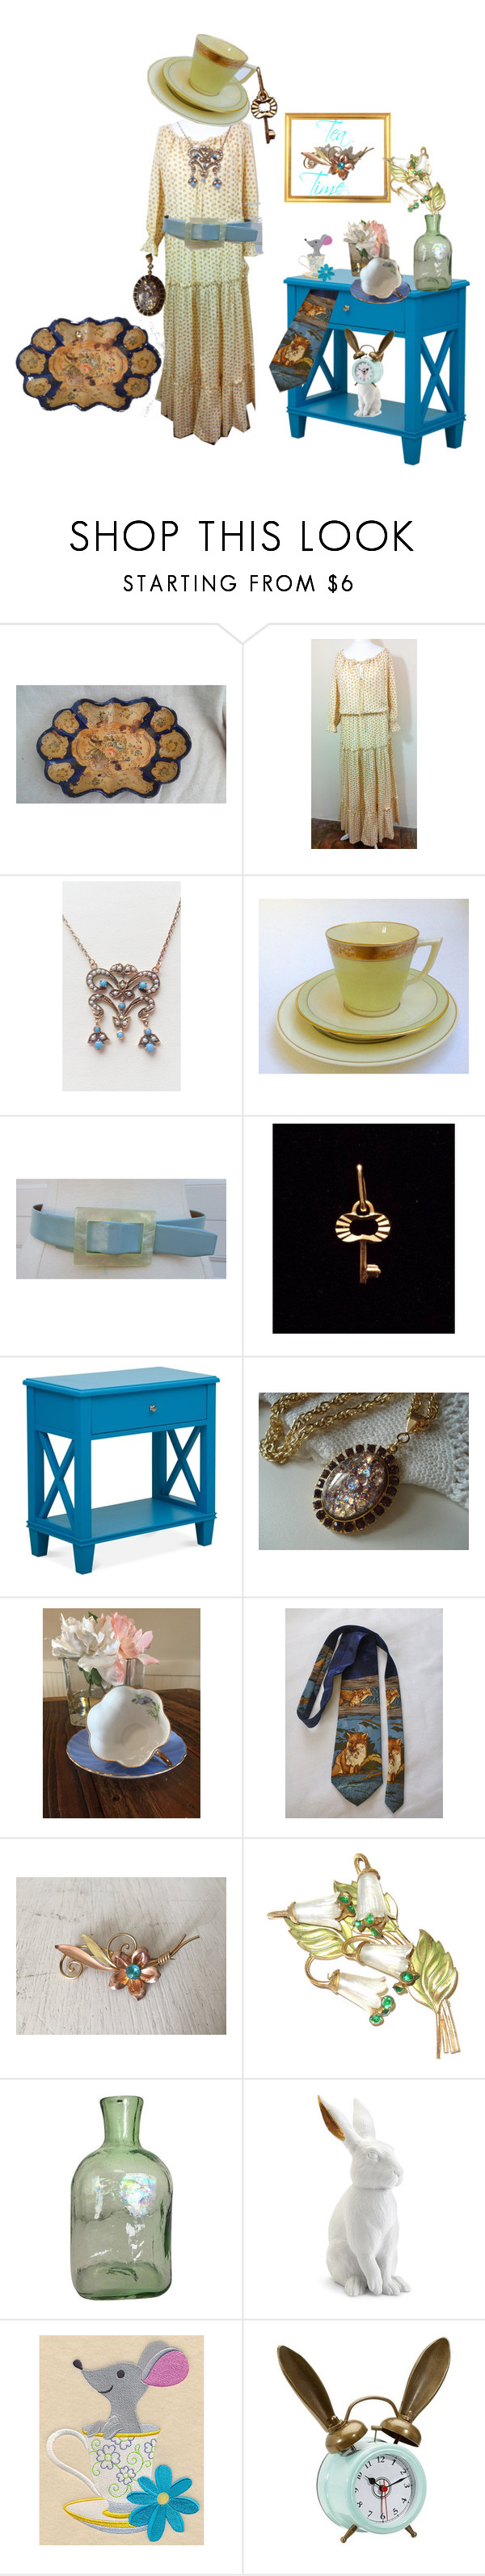 """Tea Time"" by starshinevintage ❤ liked on Polyvore featuring Laura Ashley, L'Objet, PBteen and vintage"